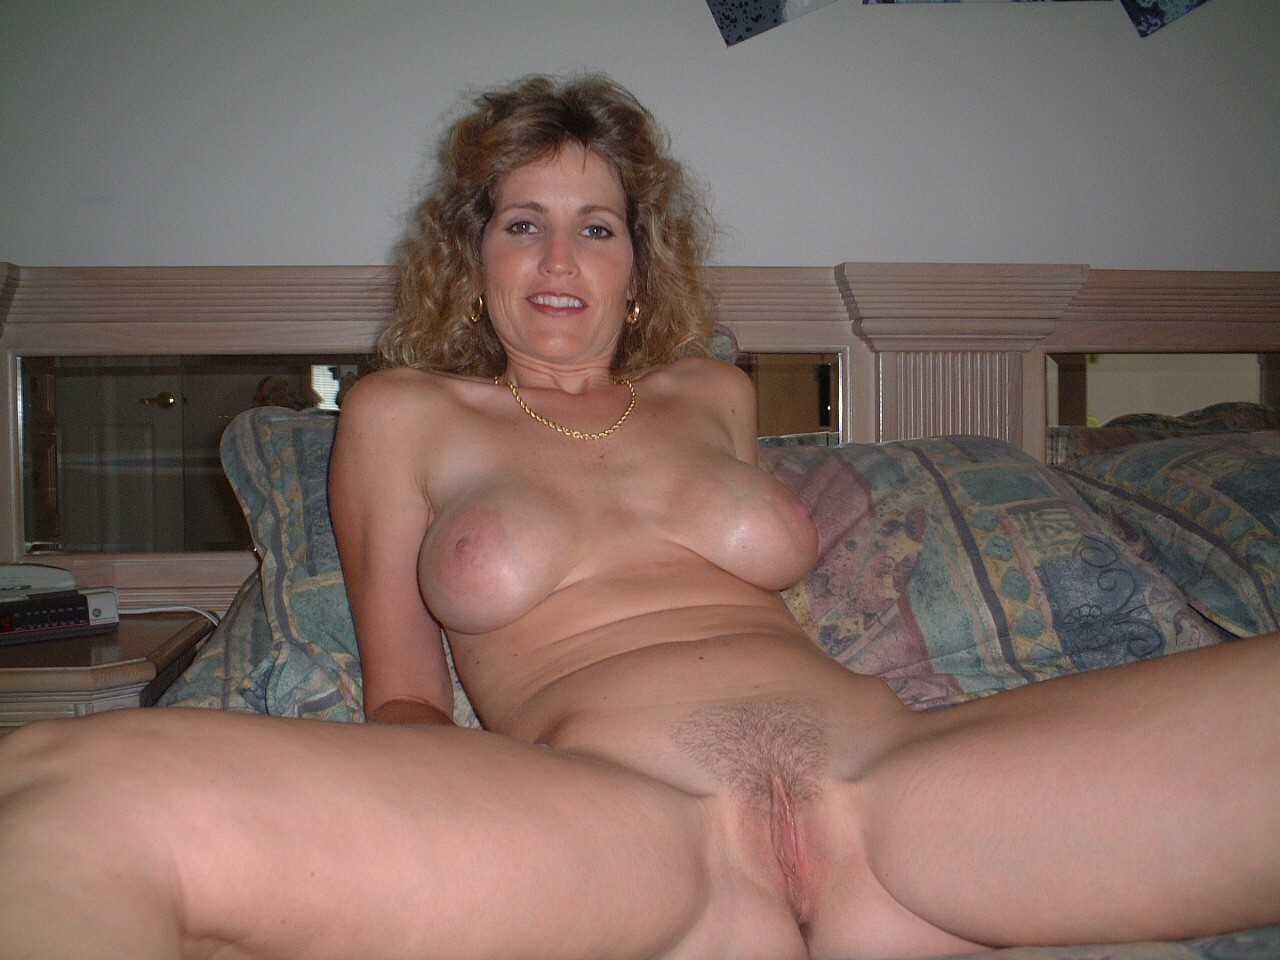 texas sweet nude pictures